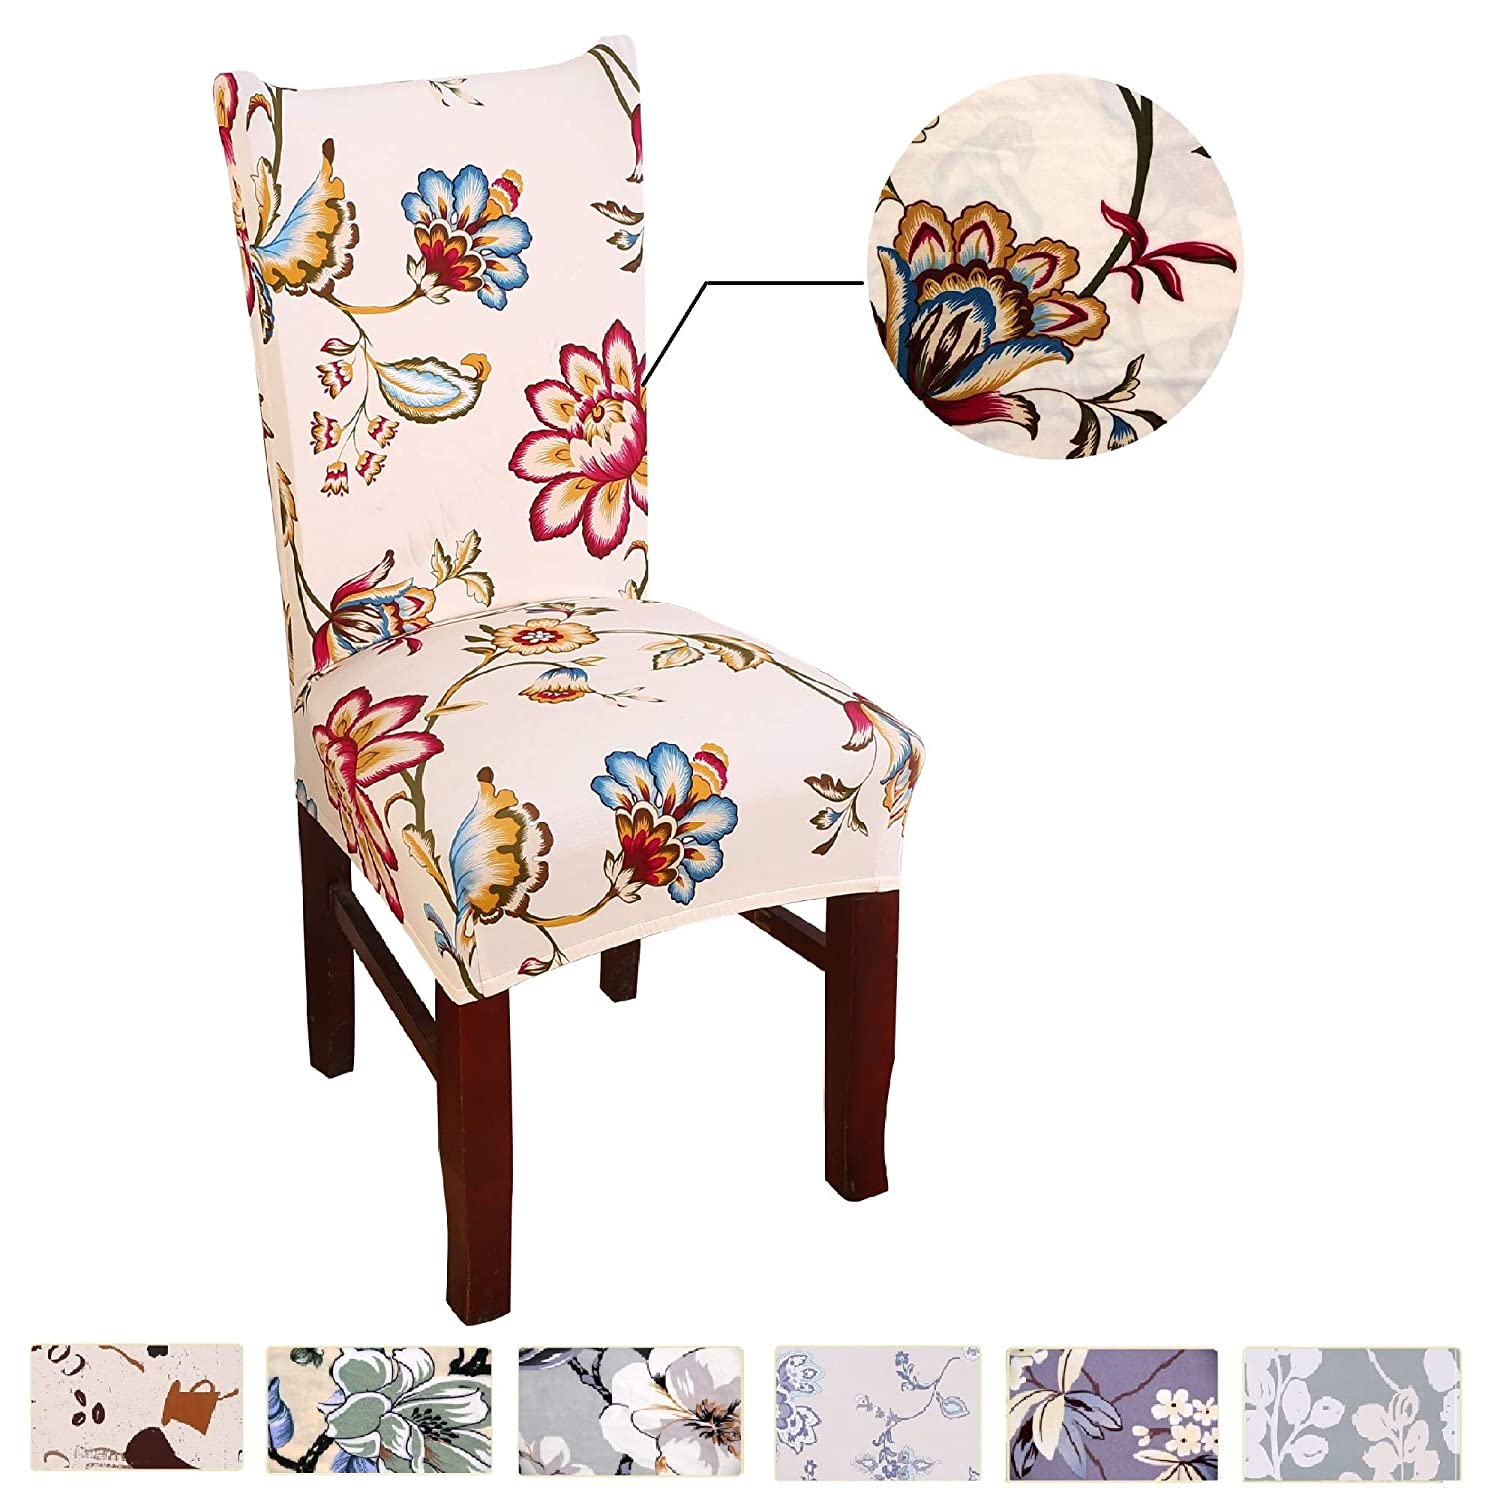 2pcsのための椅子カバーダイニングルームSpendex Slipcovers Spring Flower Design by argstar MKMY171002Hc  Type H B0785VVDDQ